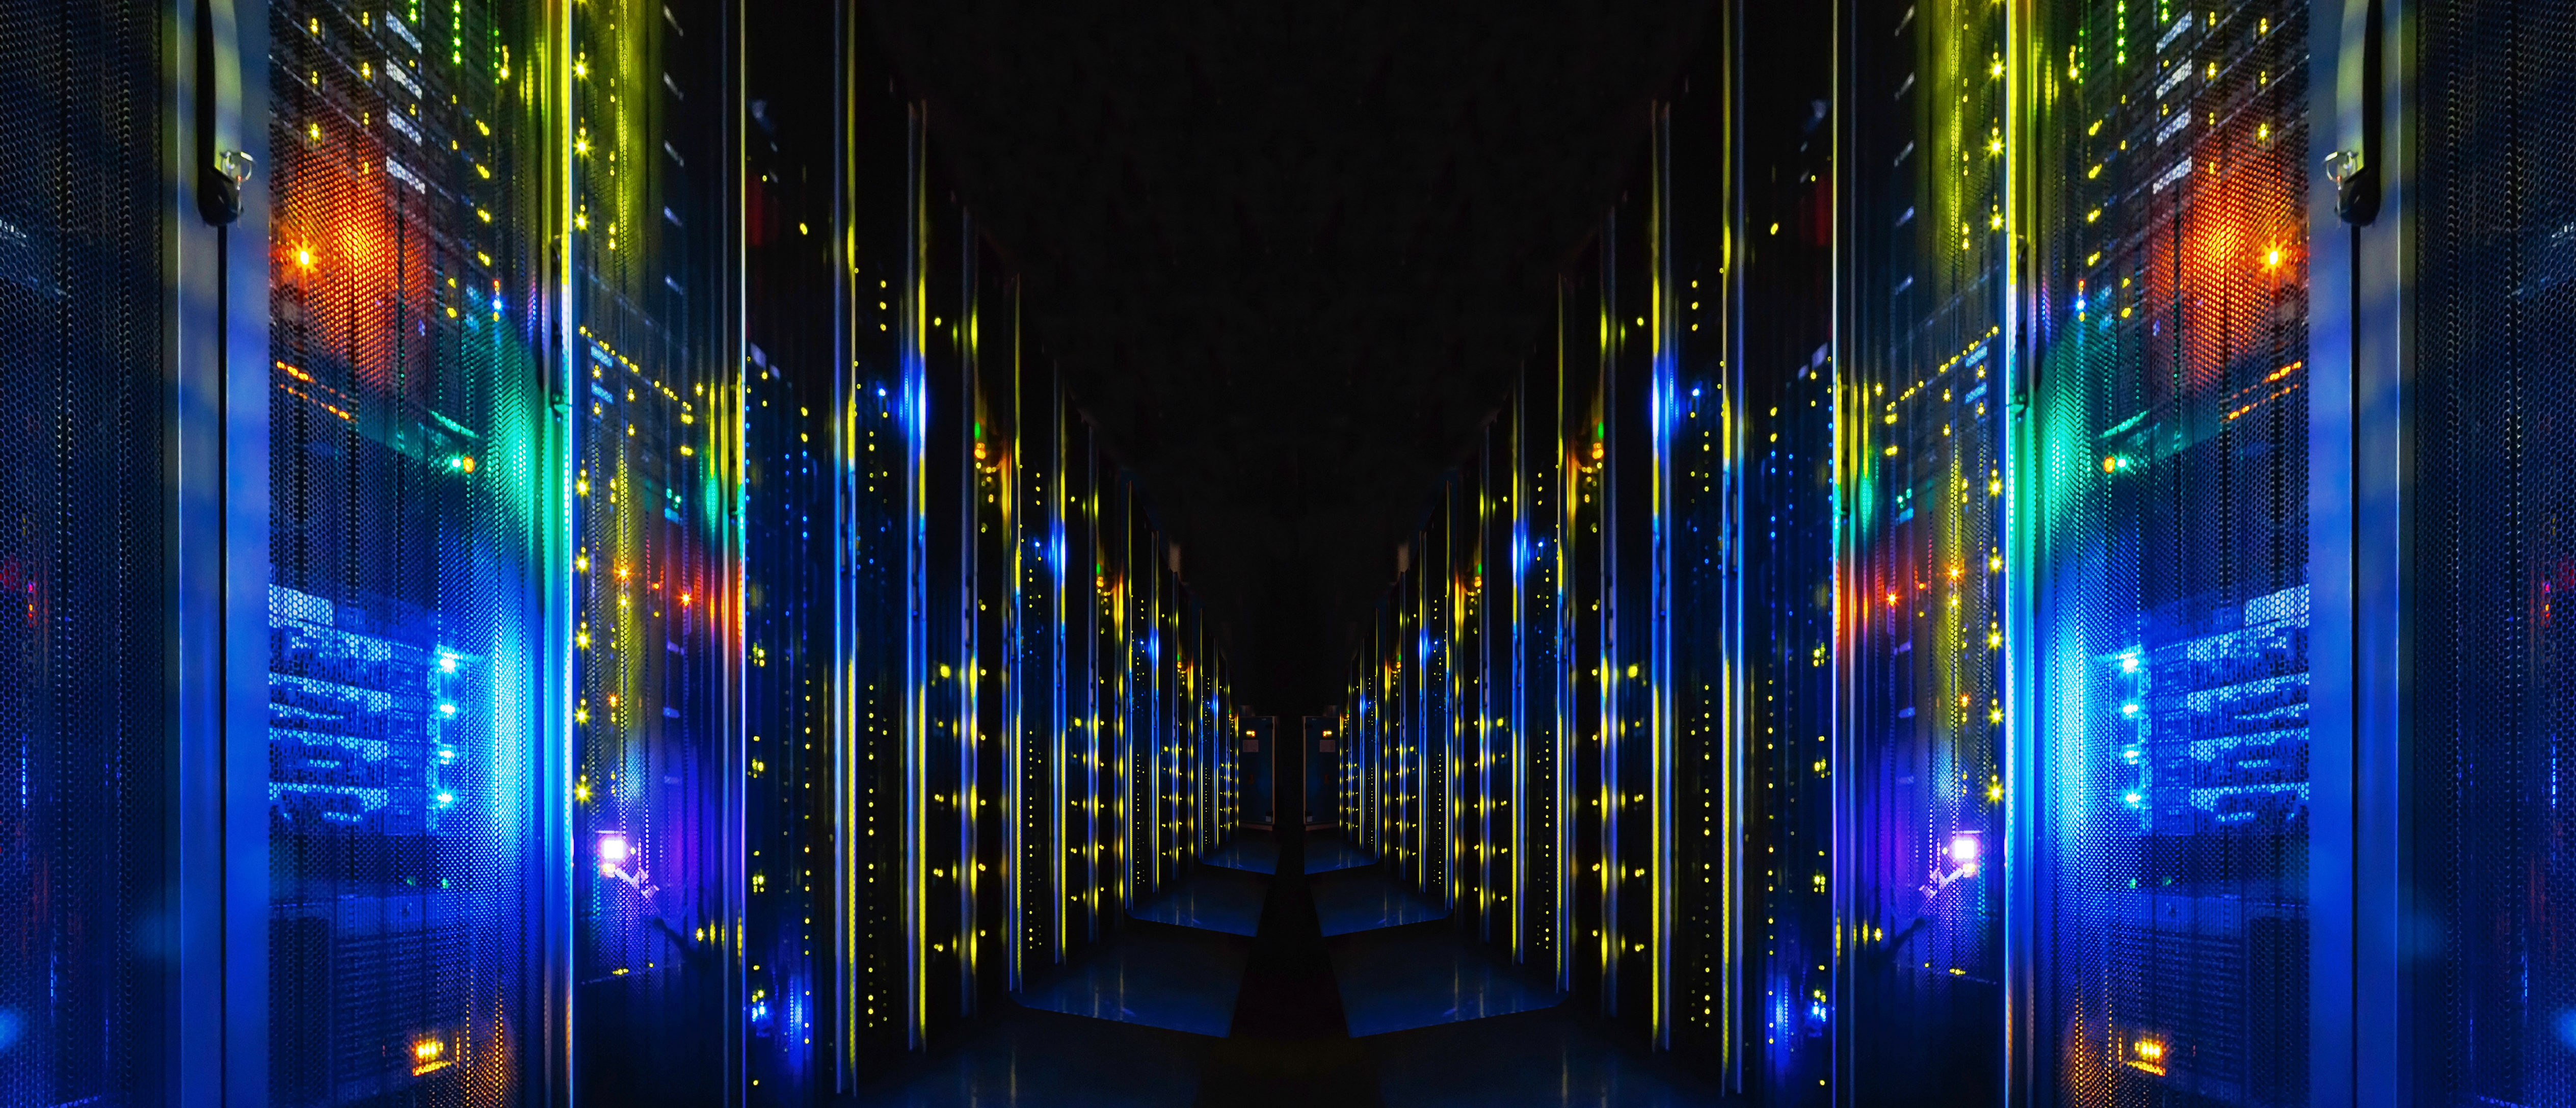 The United States has restricted the sale of certain technological products to Chinese groups involved in military related supercomputing. shutterstock_1189160020